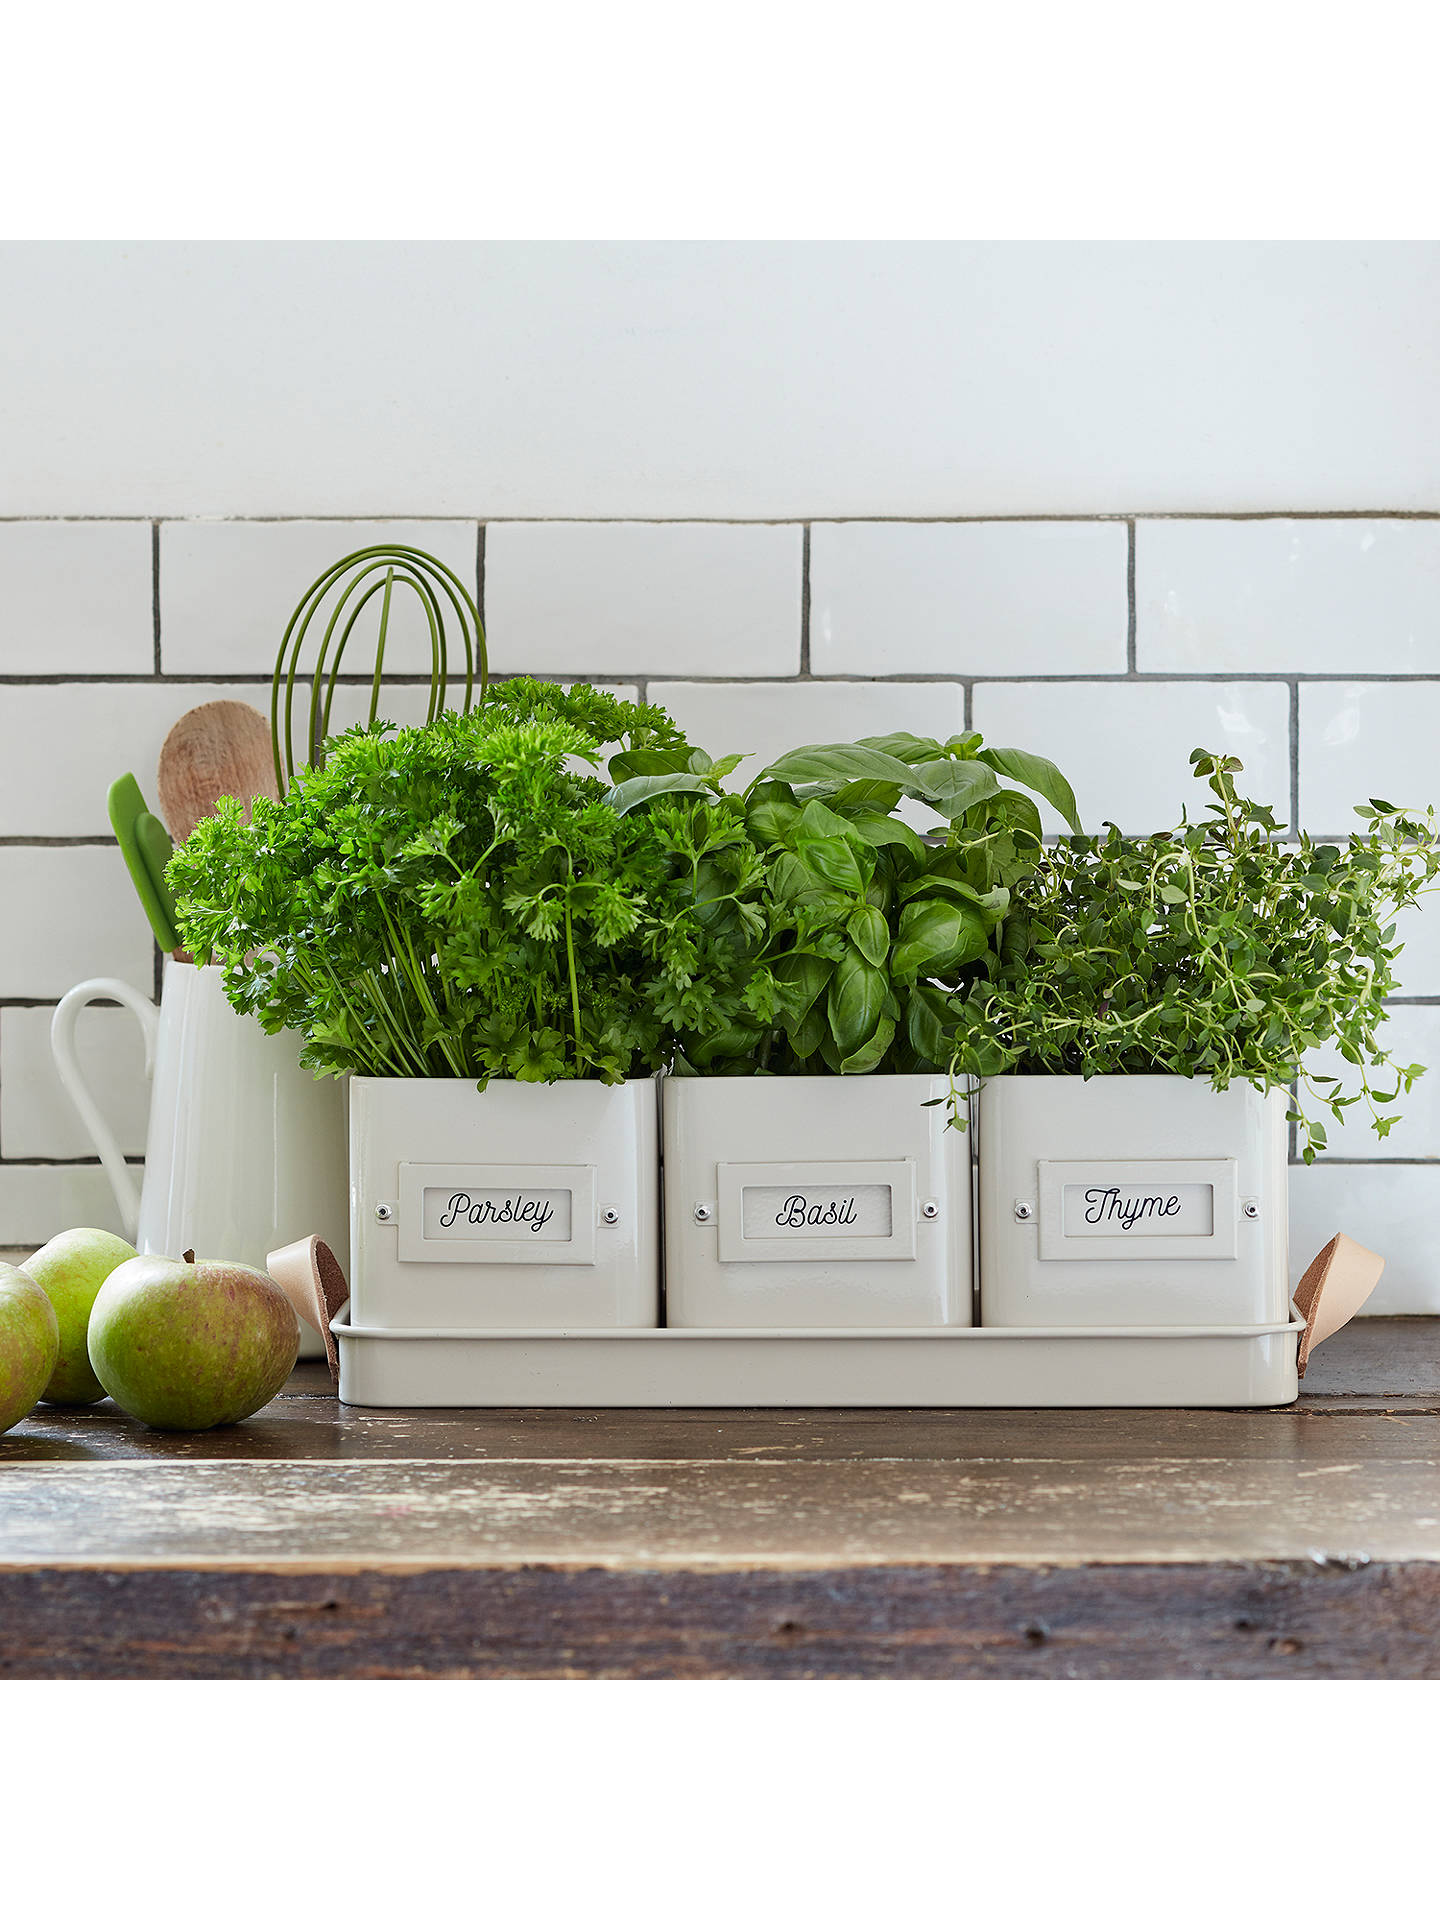 Buy Burgon & Ball Square Enamel Herb Pots with Tray, Set of 3, Cream Online at johnlewis.com